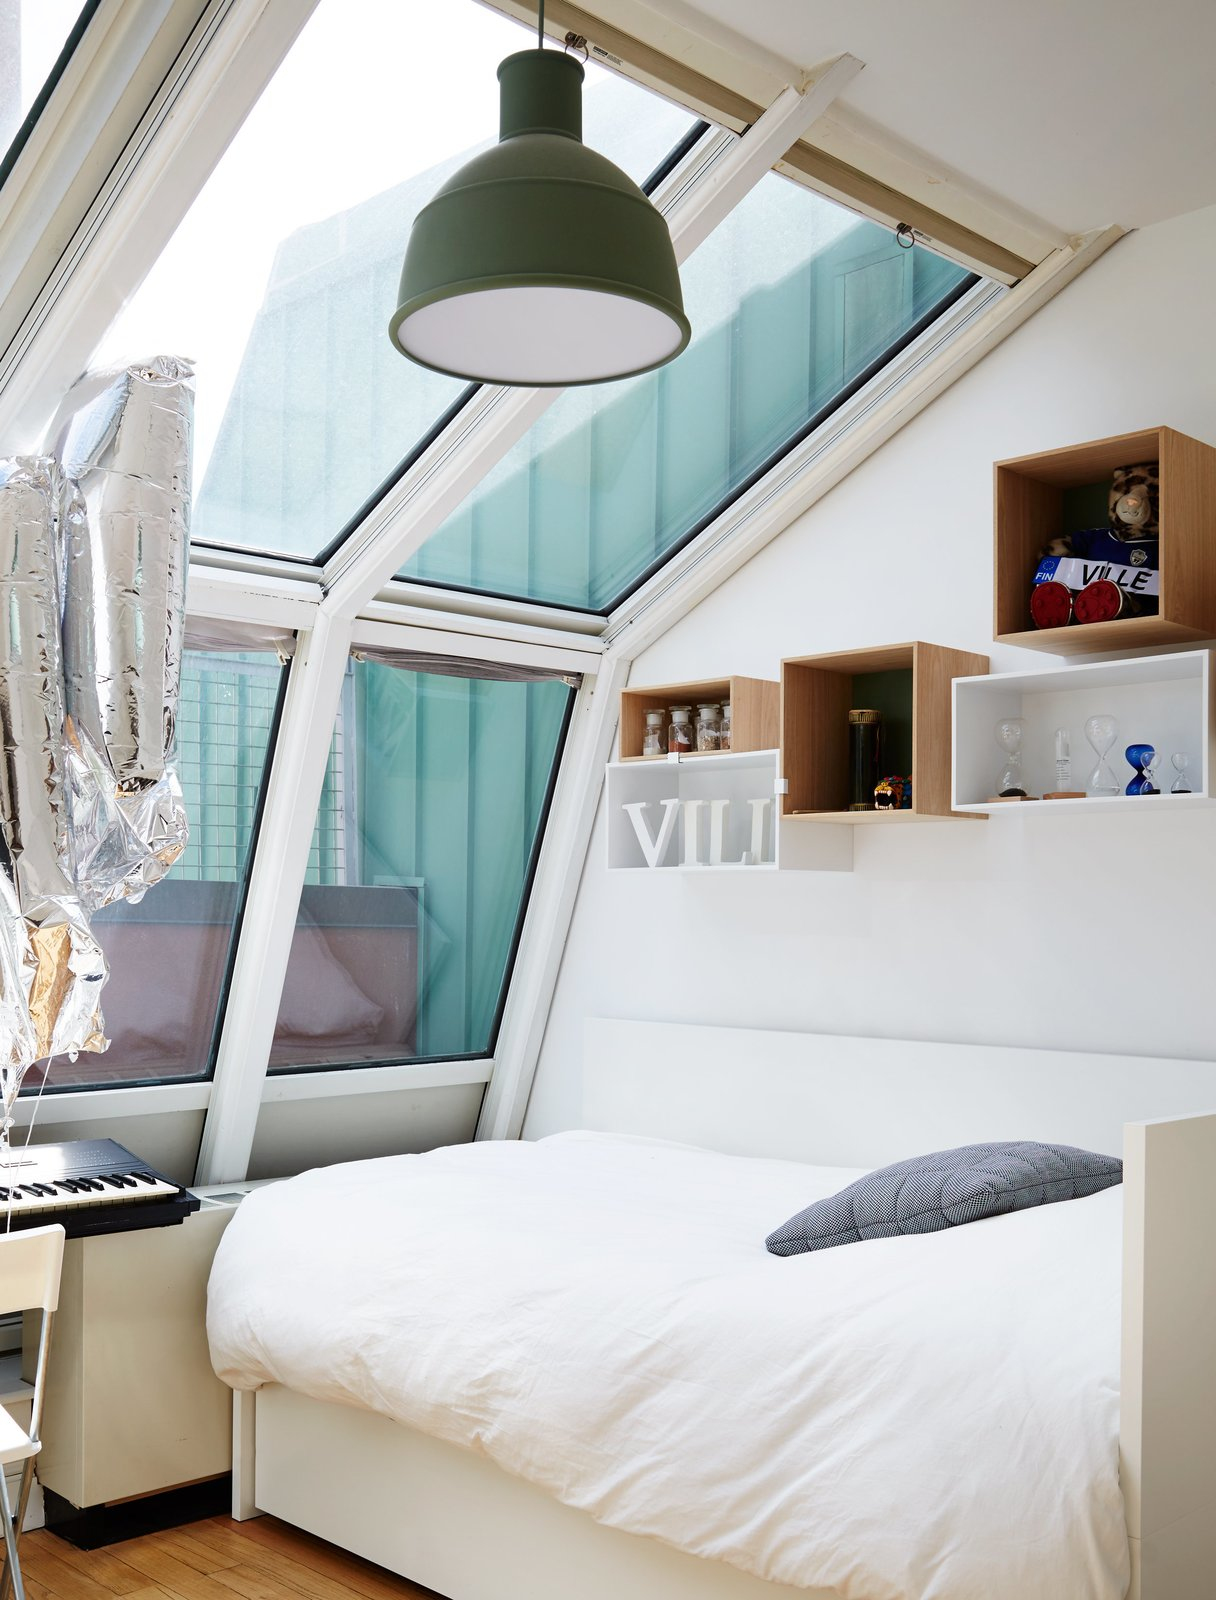 Bedroom, Ceiling Lighting, Pendant Lighting, Shelves, Storage, Bookcase, Bed, Chair, Lamps, and Medium Hardwood Floor A Muuto Unfold pendant hovers over one of the kids' beds.  Photo 11 of 14 in A Danish Design Kingpin Moves to NYC With a Shipping Container of Furniture in Tow